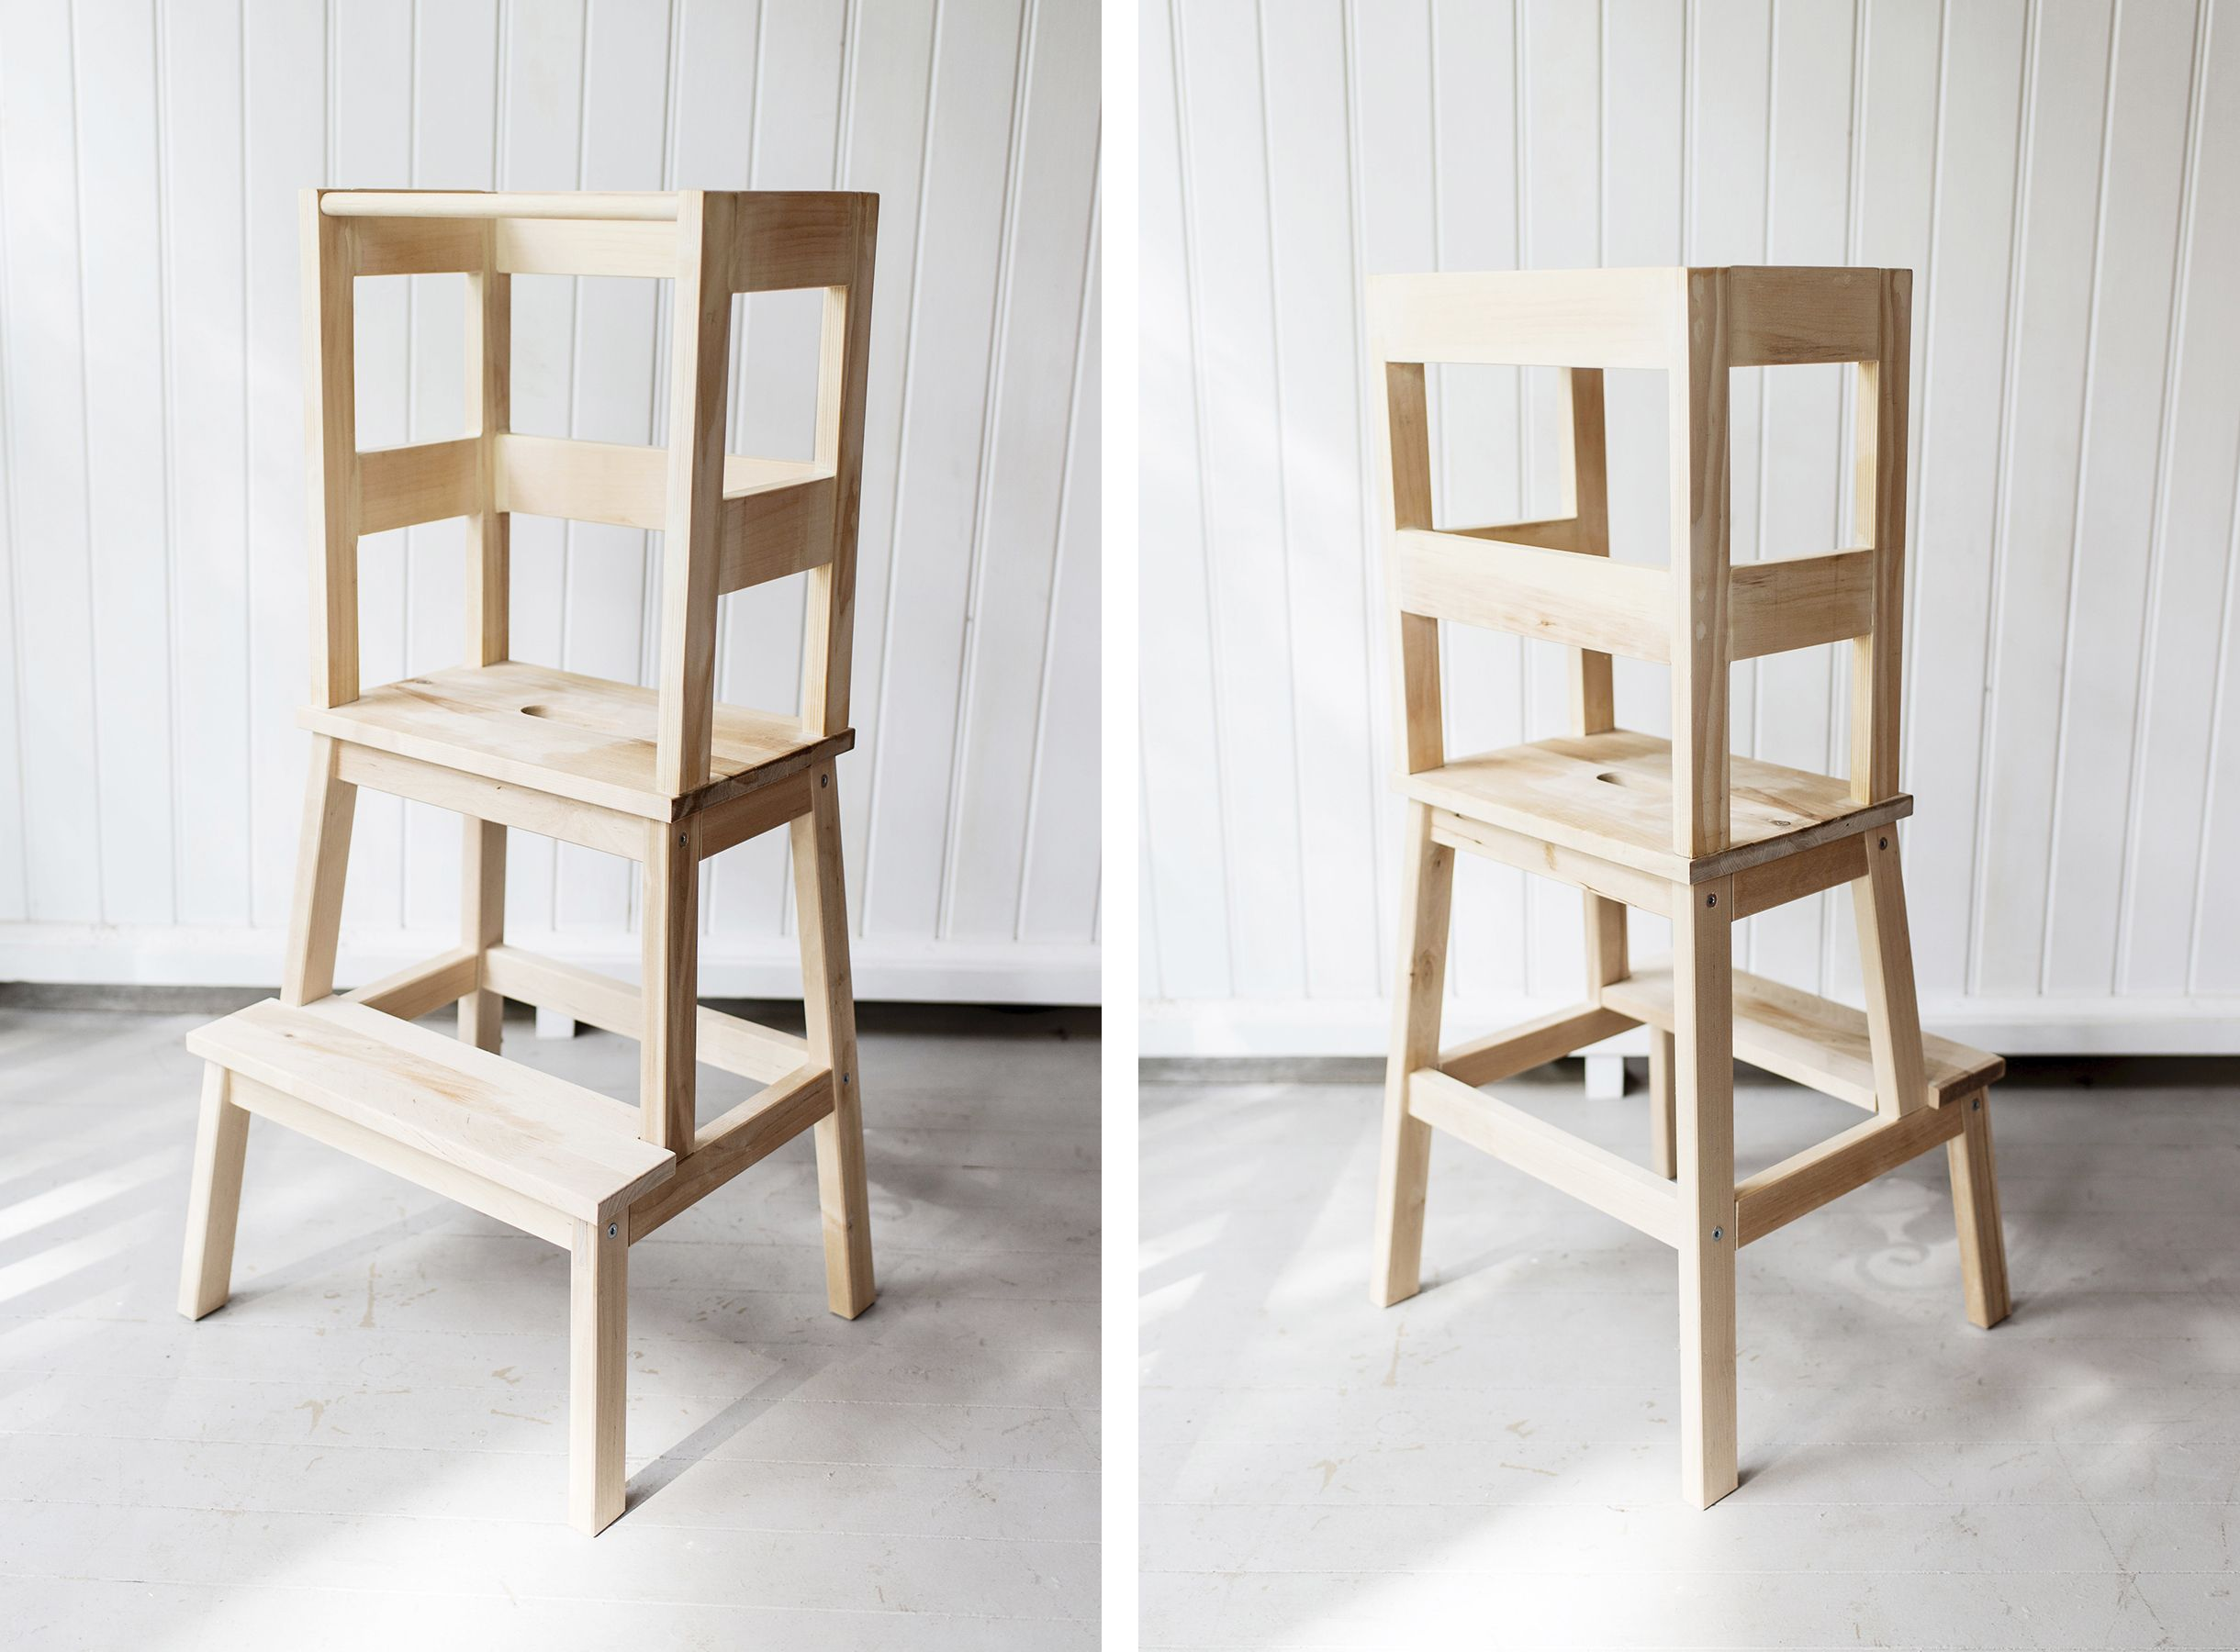 Ikea hack toddler learning tower using a Bekväm stool